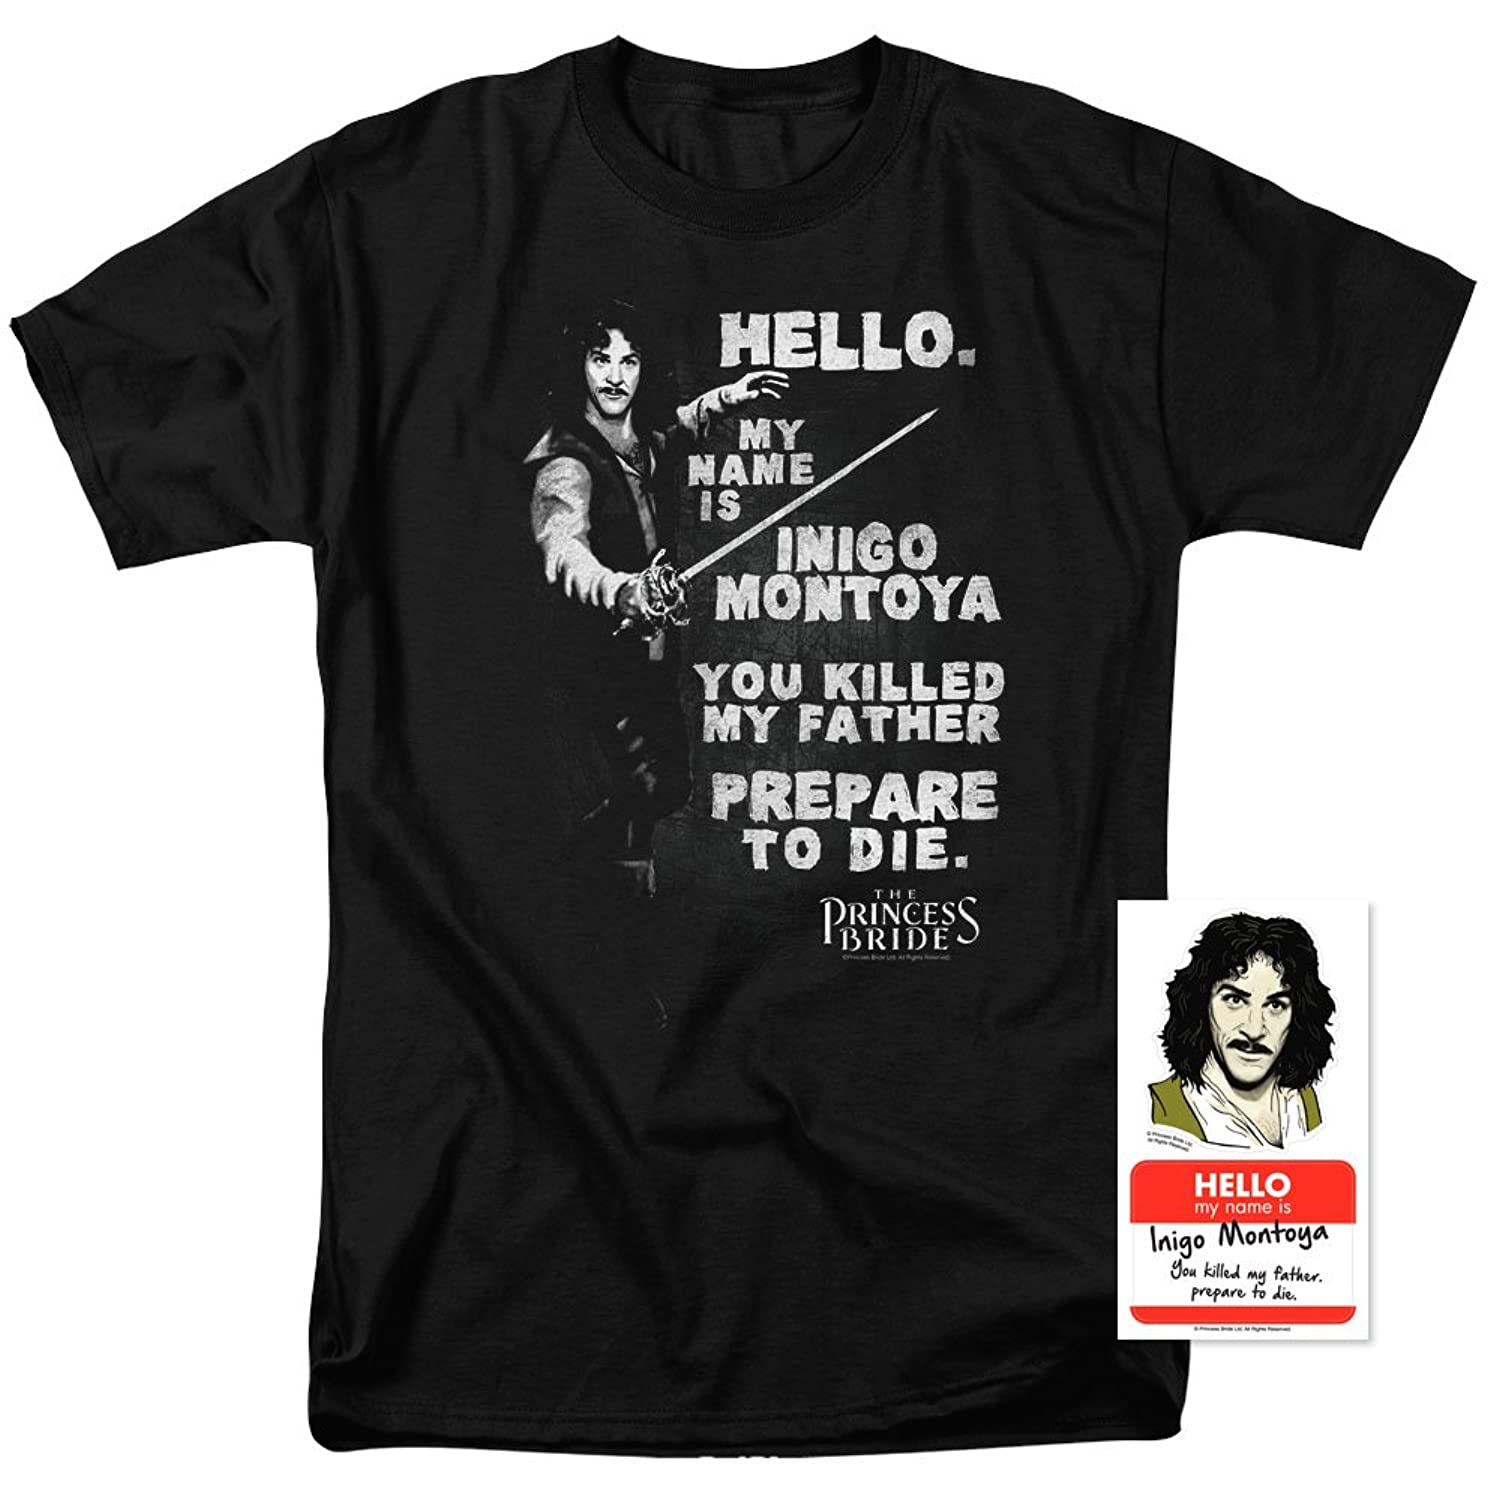 Princess Bride Movie Inigo Montoya T Shirt and Exclusive Stickers Hello My Name is